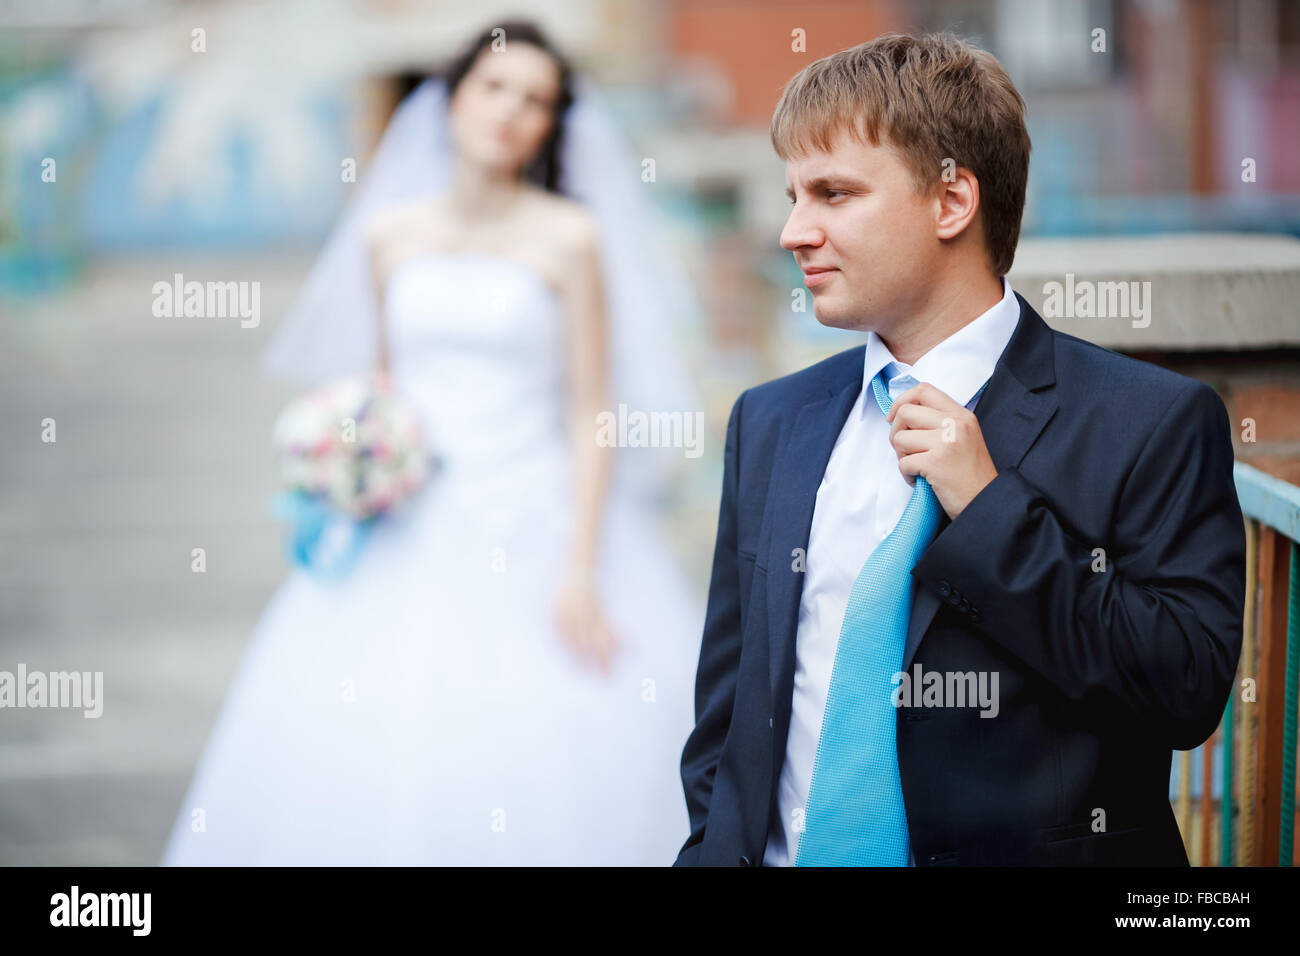 The groom dark blue suit straightens turquoise tie with a sour face, in background tired and frustrated bride waiting. - Stock Image